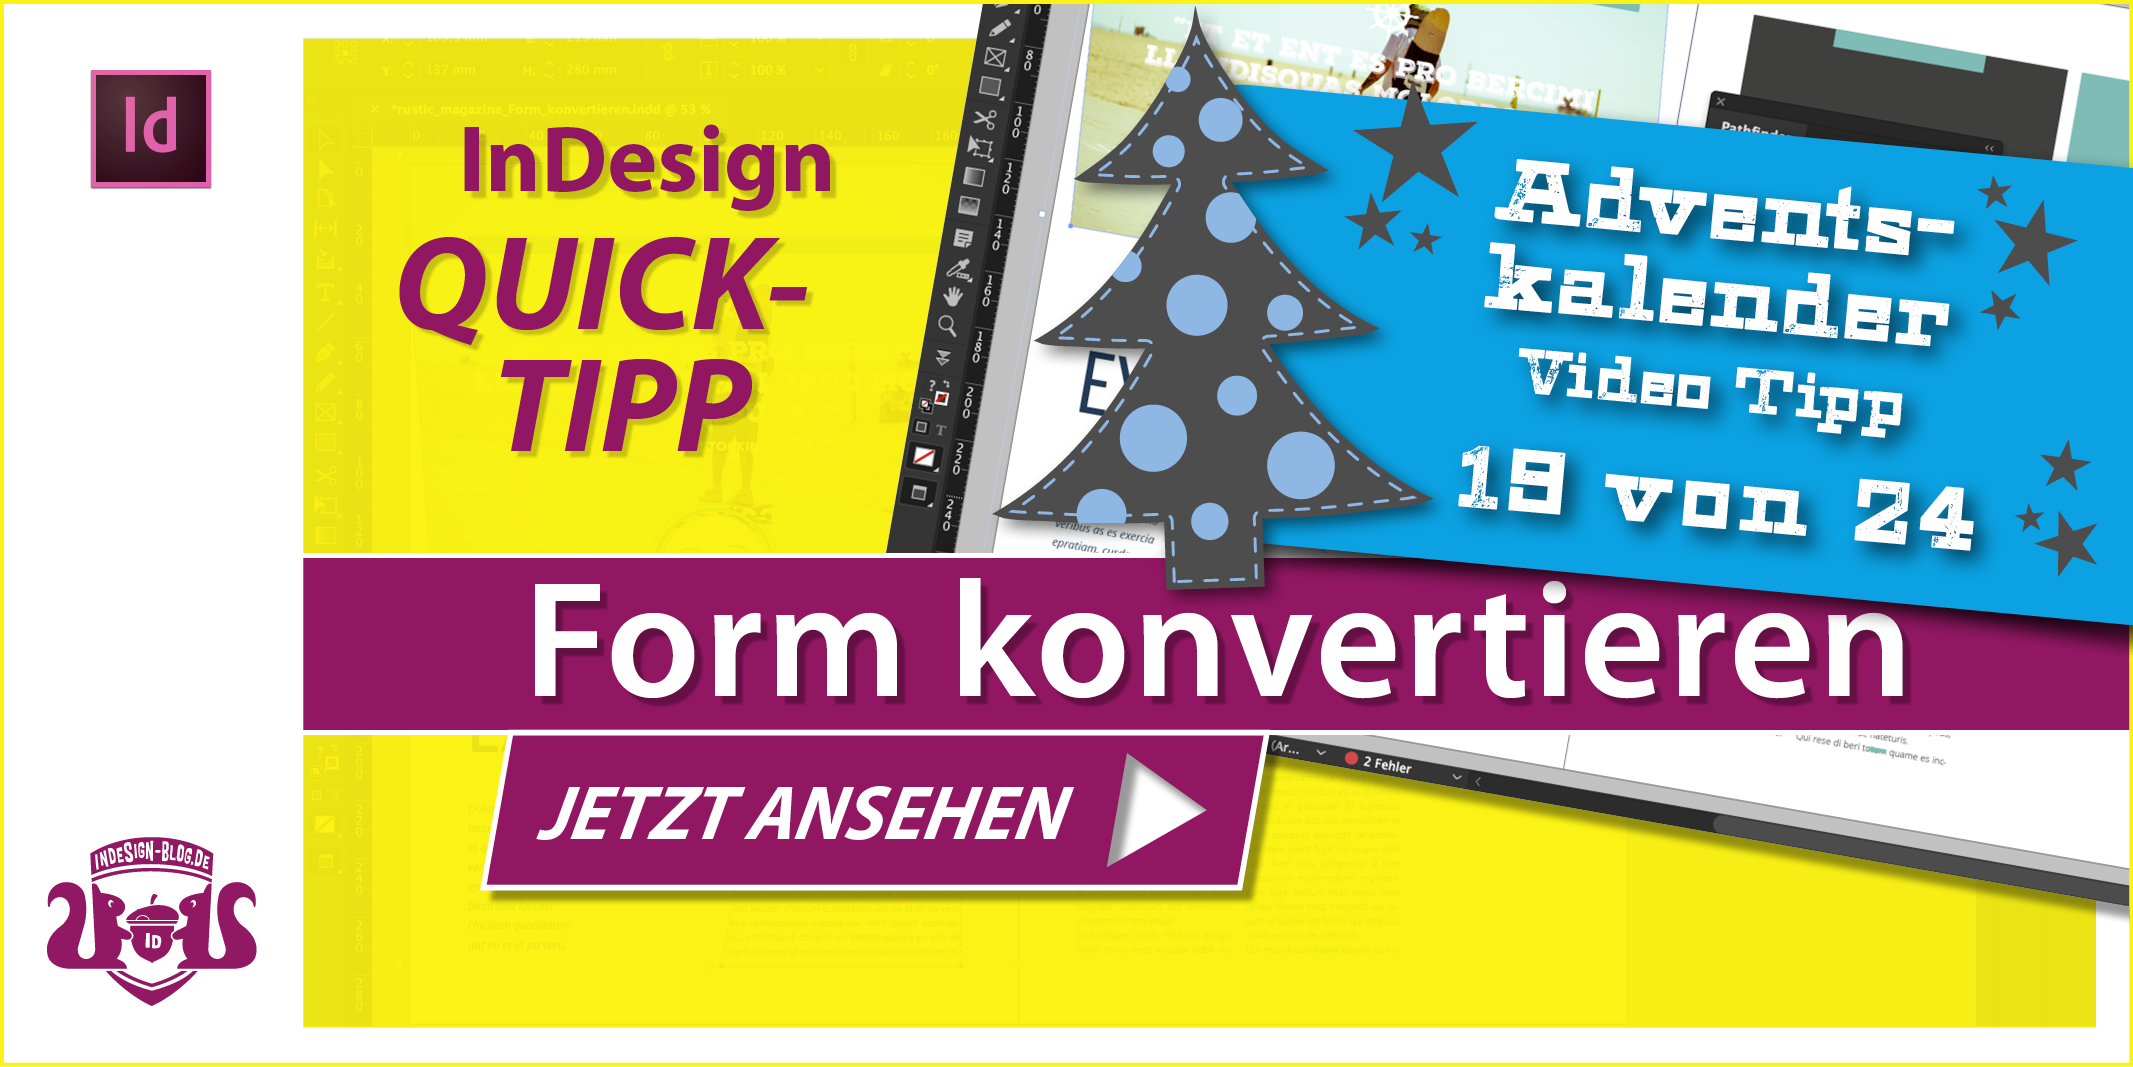 Thumbnail Quicktipp Form konvertieren in InDesign